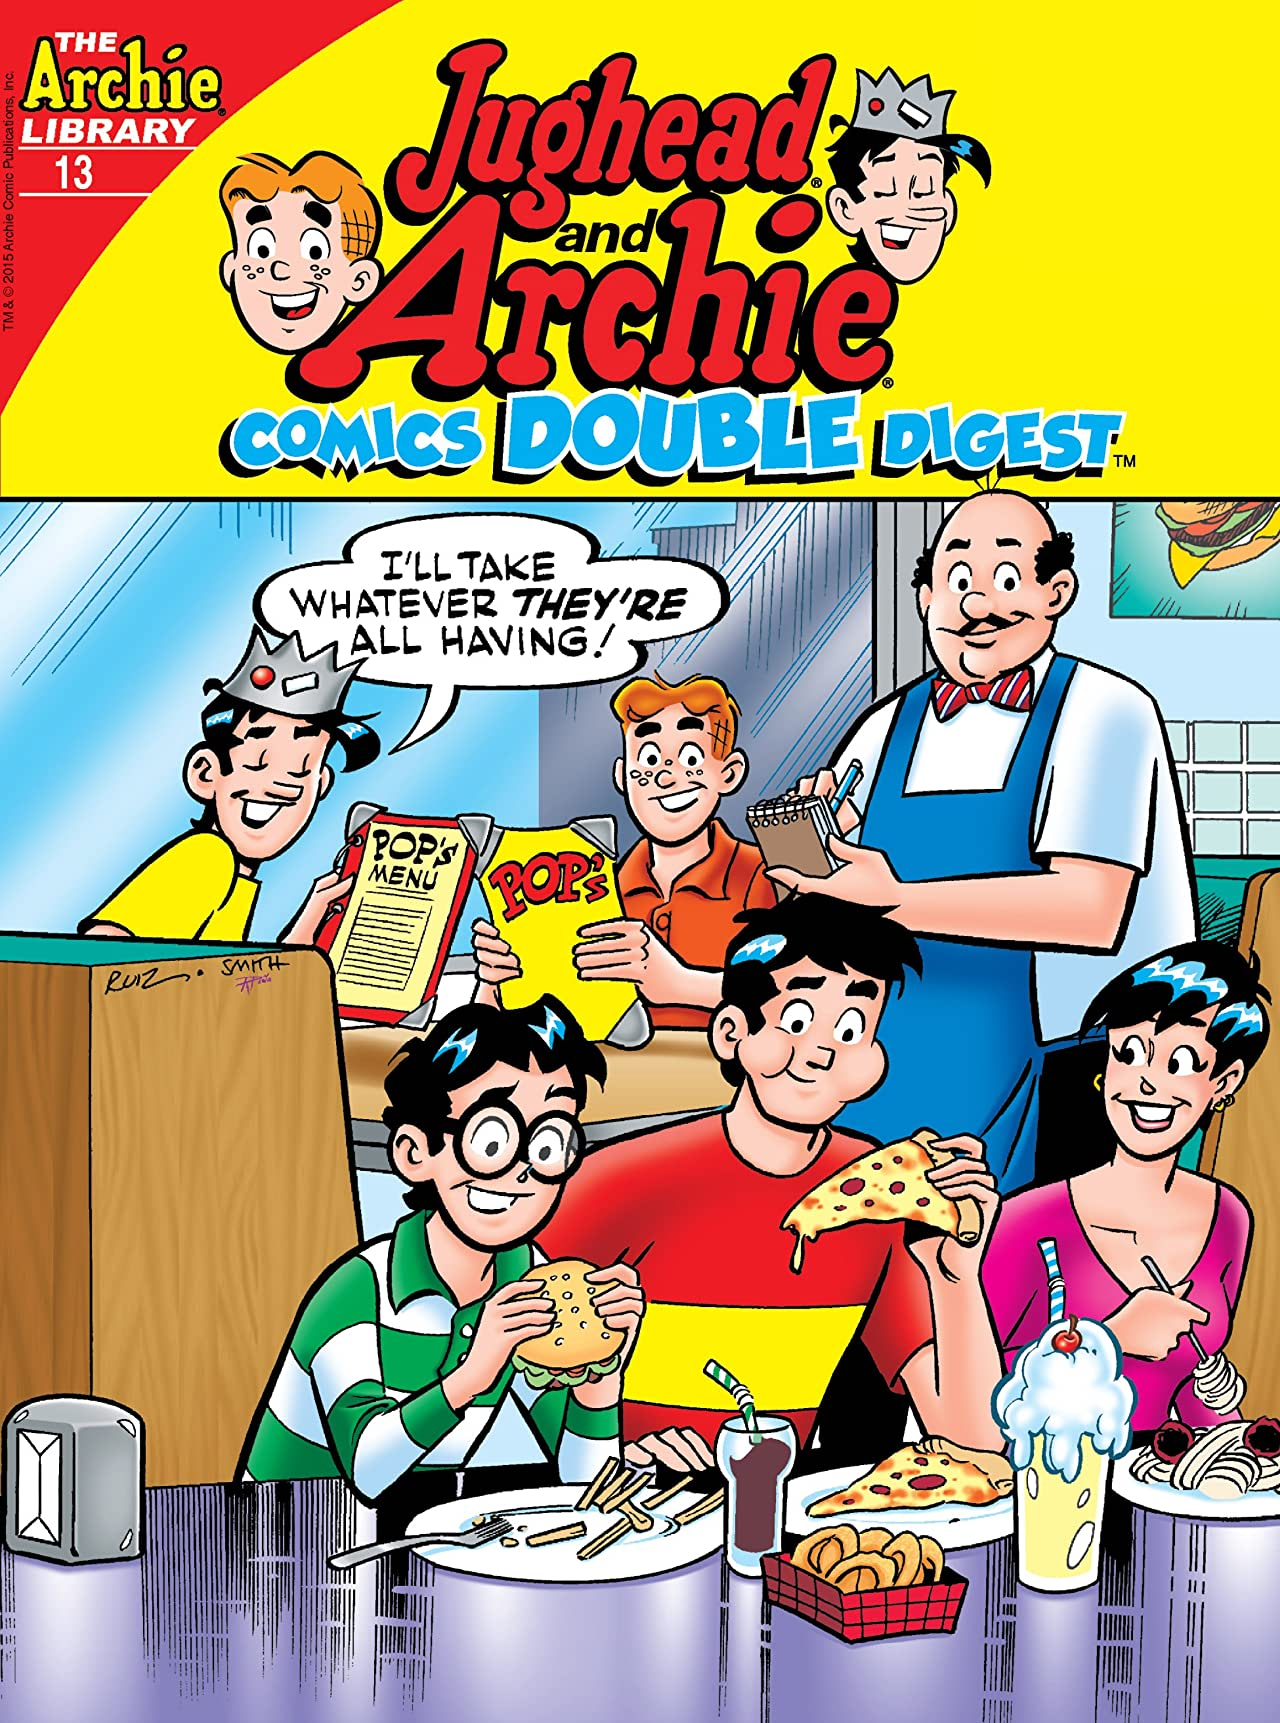 Jughead and Archie Comics Double Digest #13